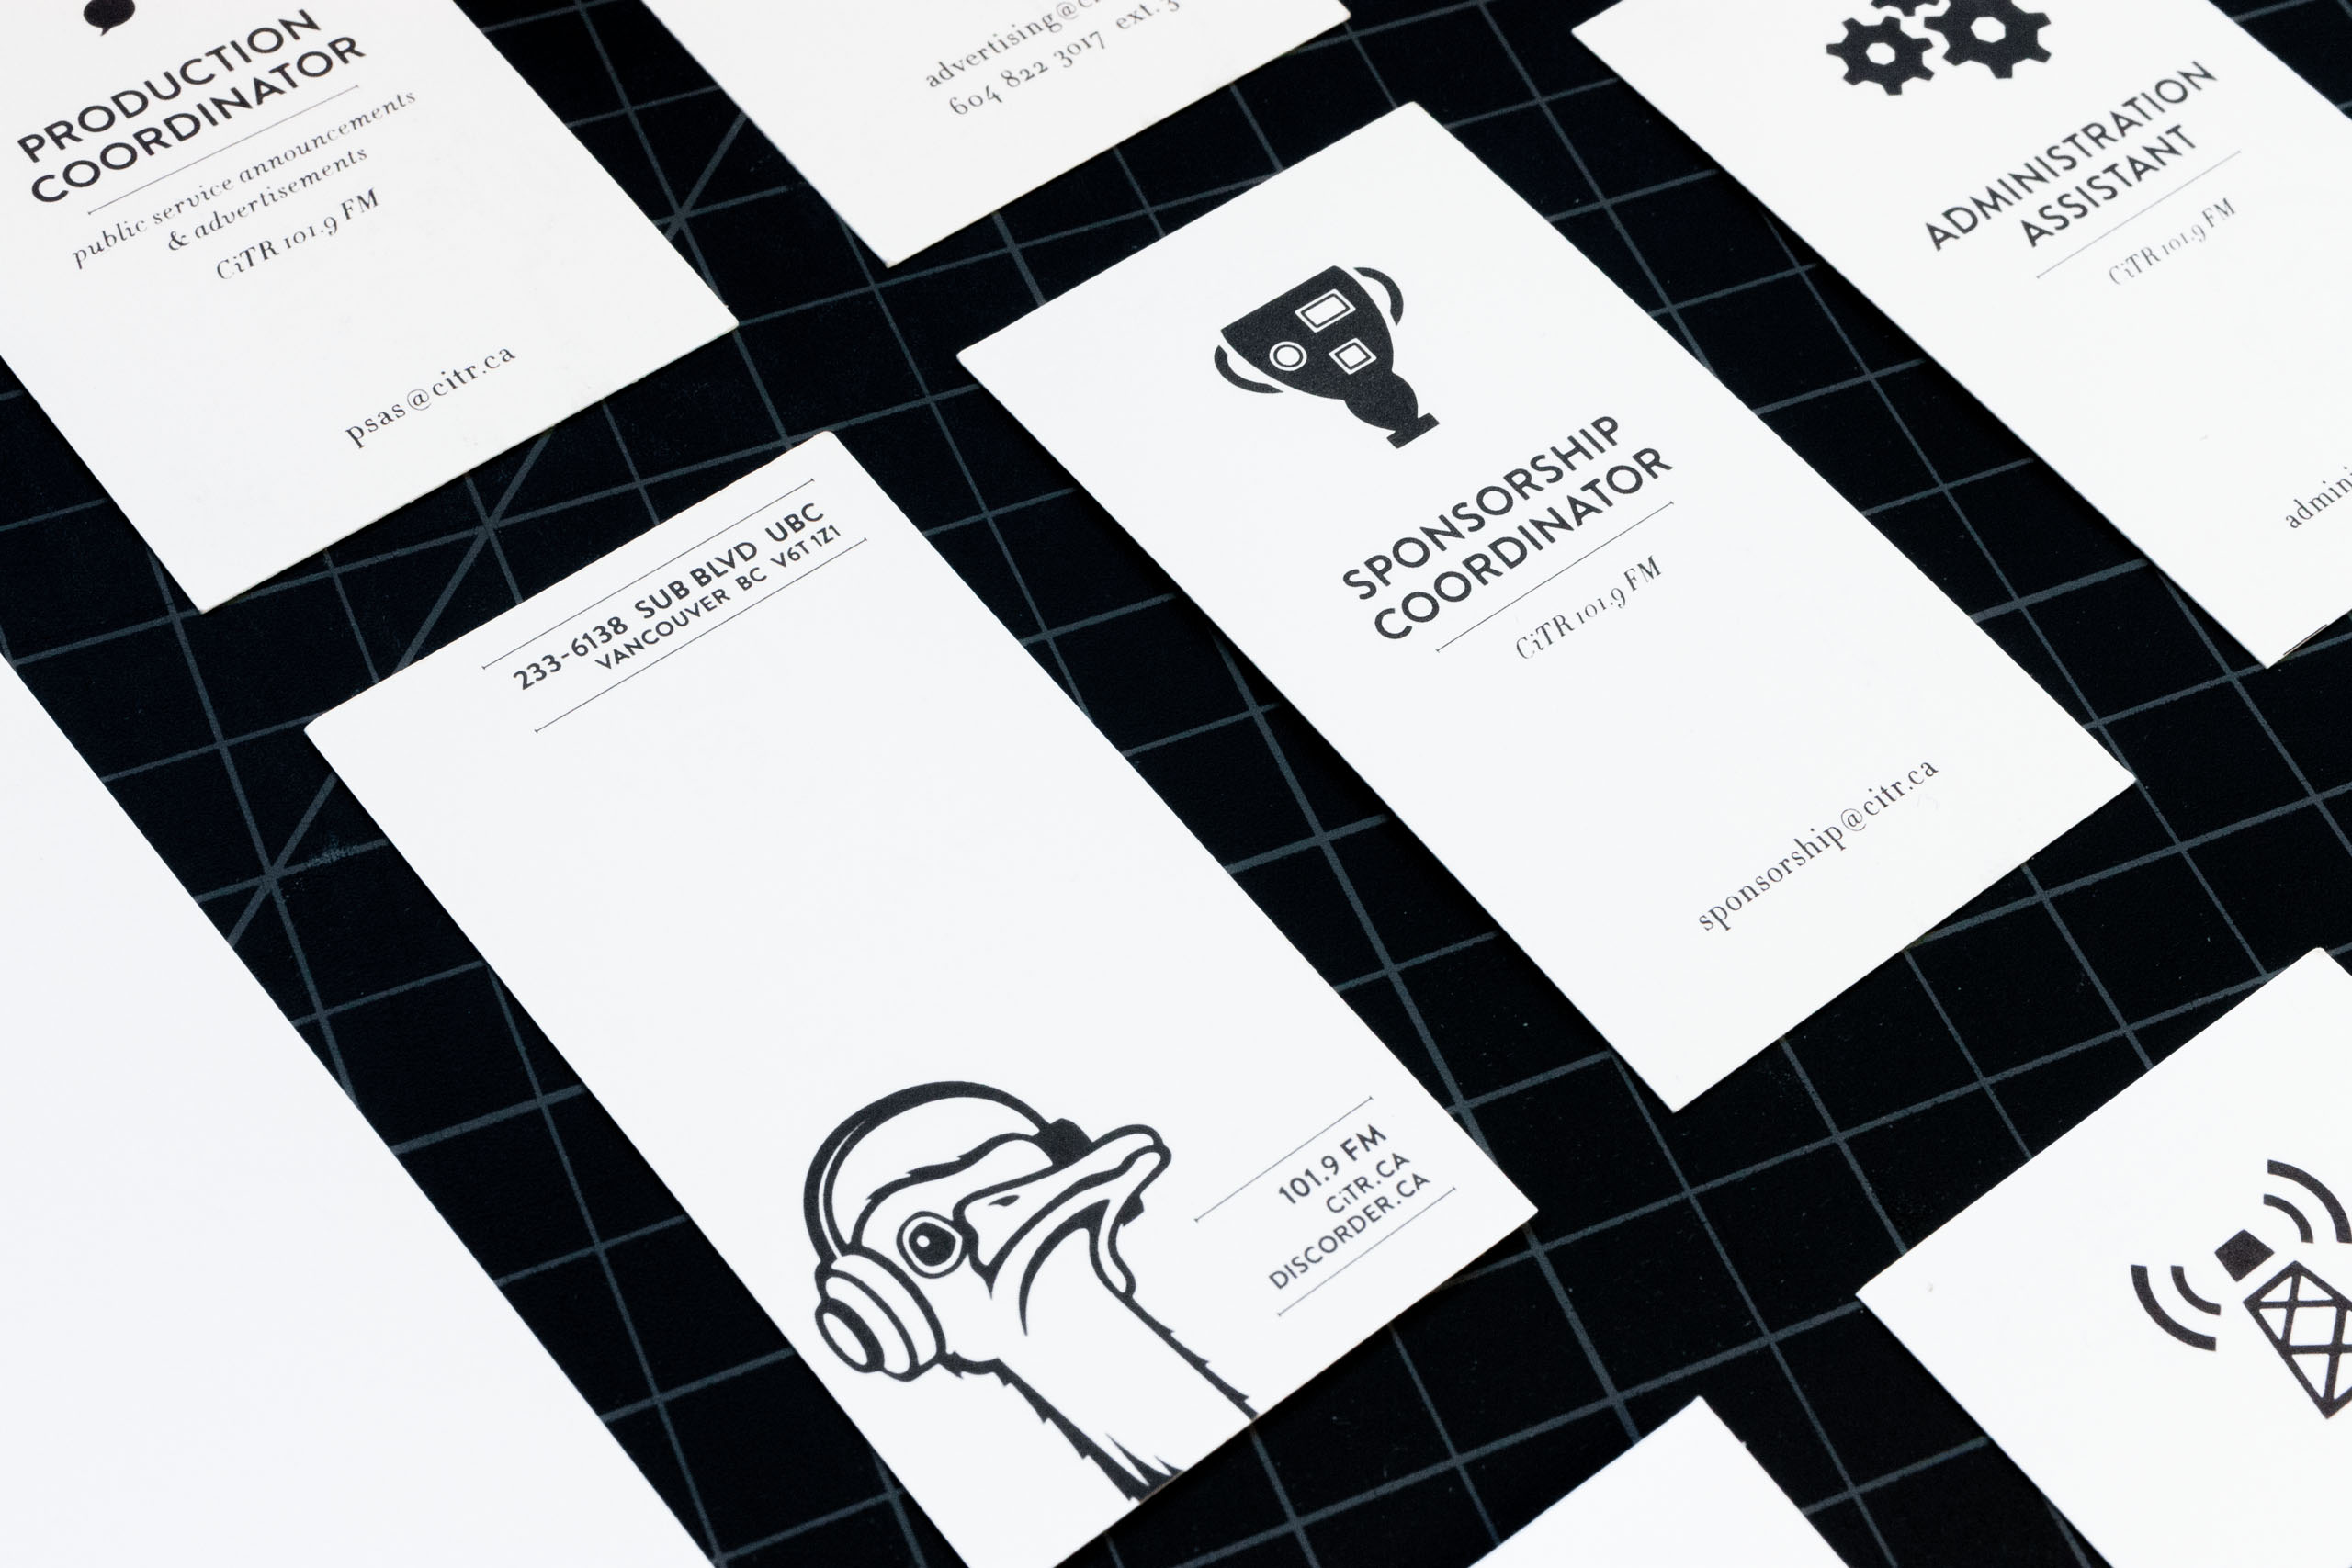 Close up of Sponsorship coordinator business cards for CiTR Radio featuring an illustration of a trophy with badges on it — by Yagnyuk.